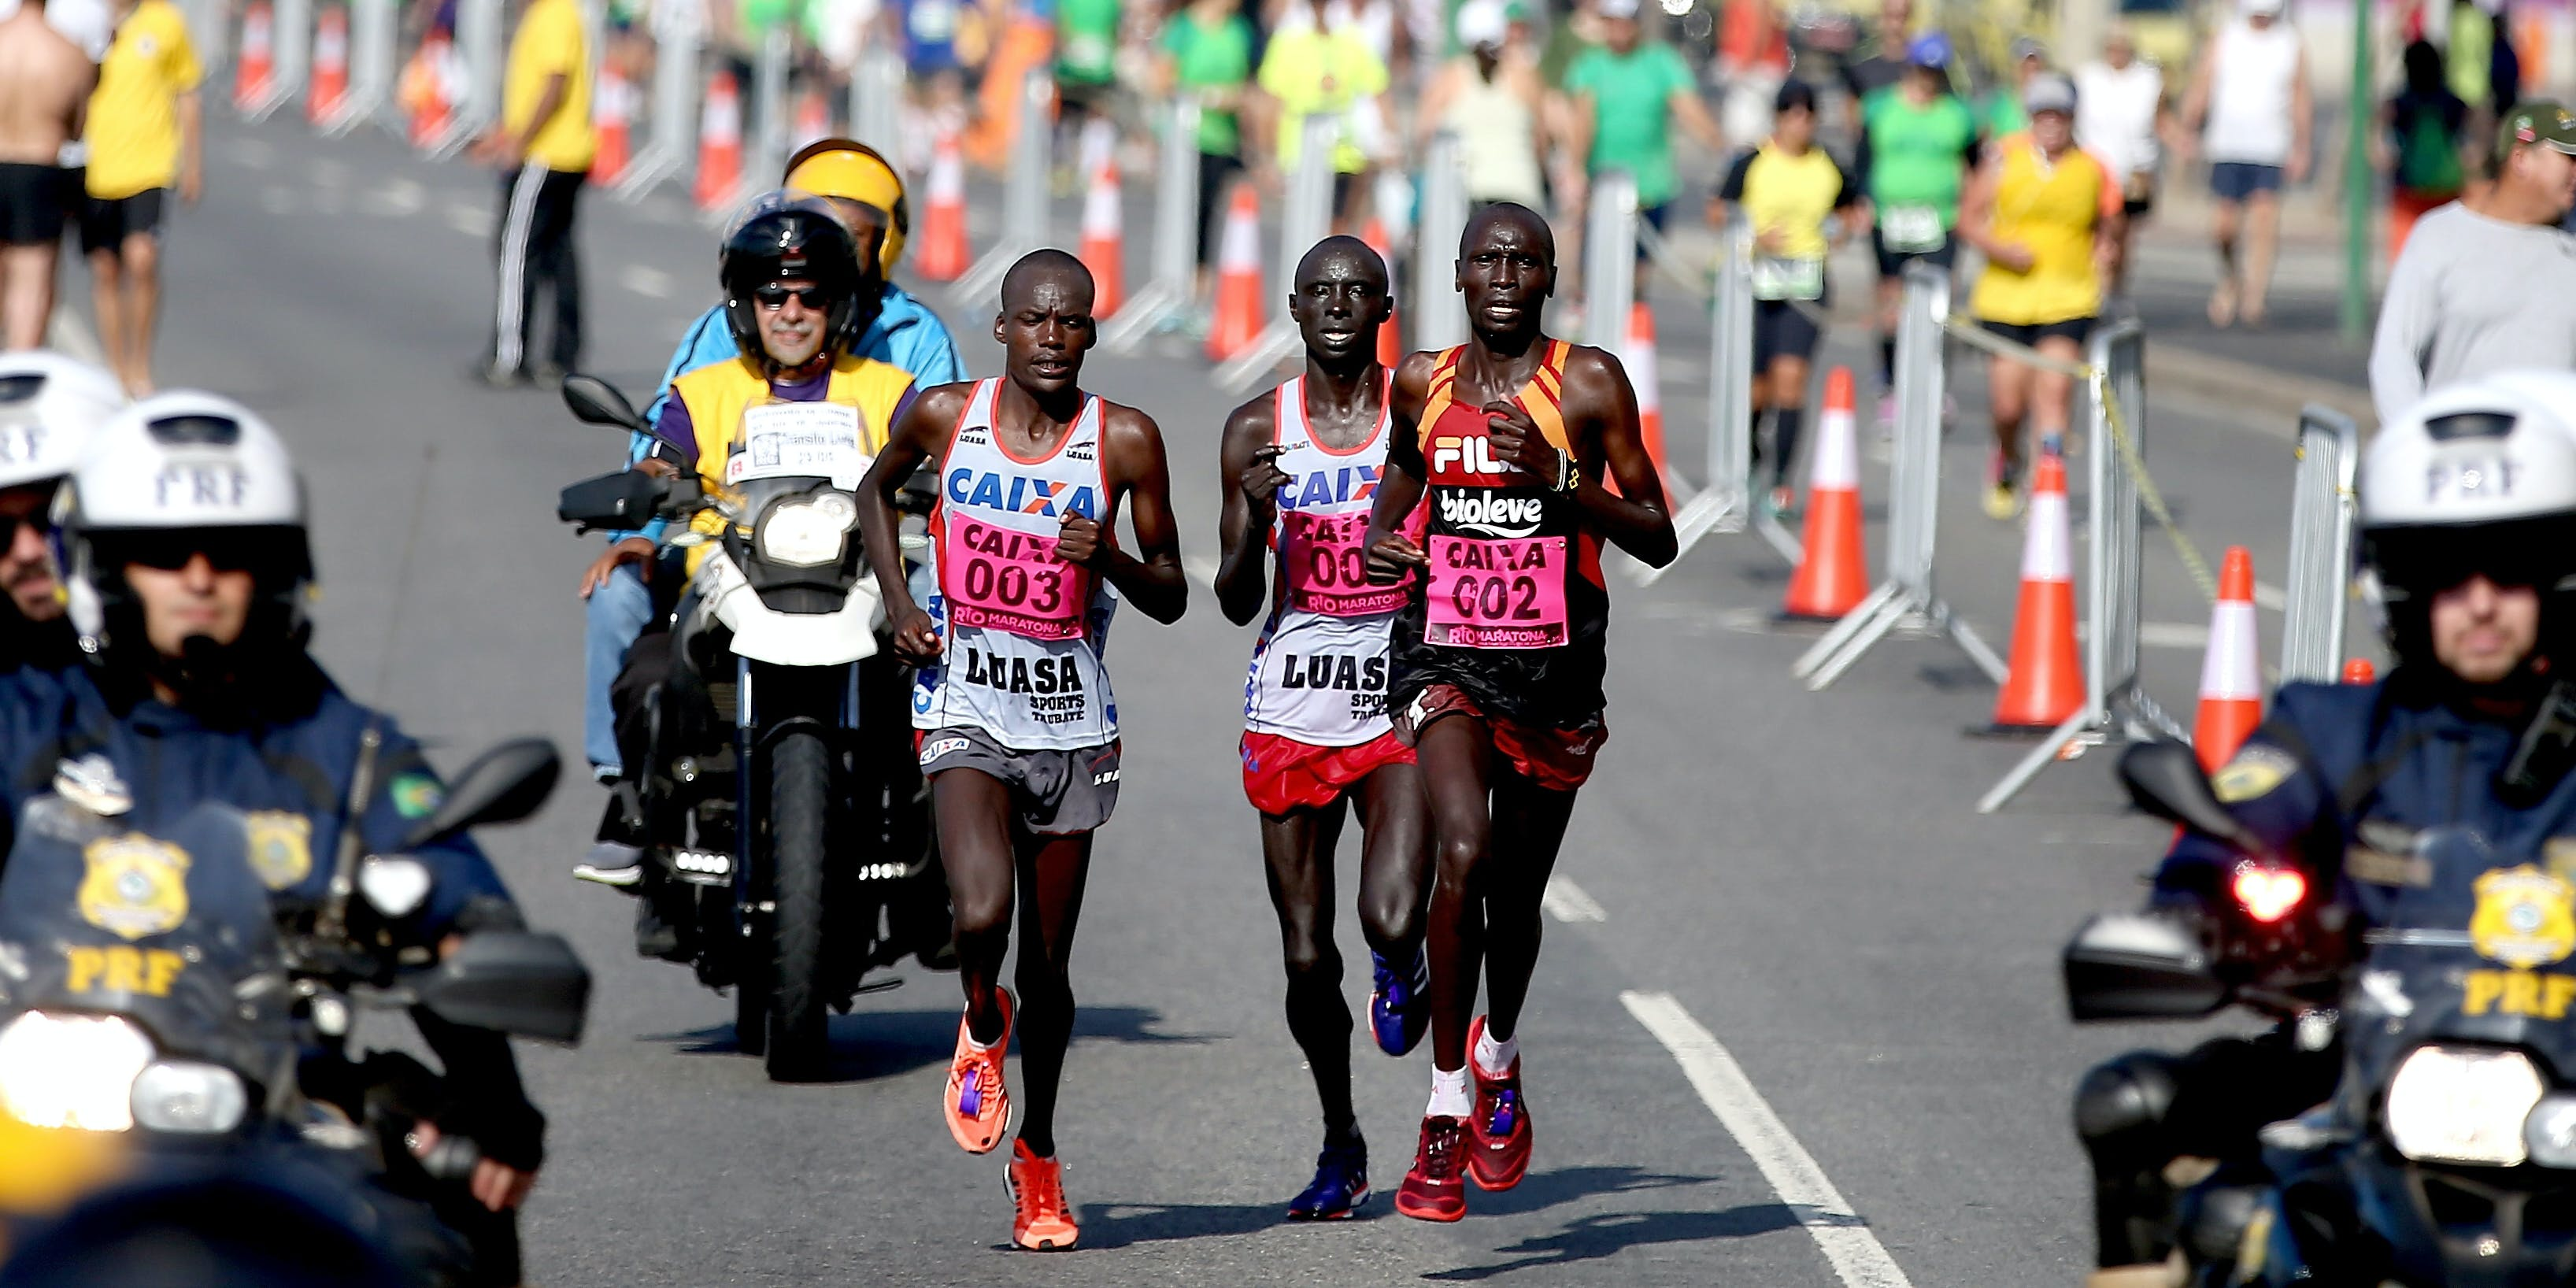 RIO DE JANEIRO, BRAZIL - MAY 29:  Elijah Kipkemei Kemboi #003 of Kenya, Will Kangogo Kimutai #001 of Kenya and Dickson Kimeli Cheruiyot #002 of Kenya run through Copacabana during the Rio de Janeiro Marathon, on May 29, 2016 in Rio de Janeiro, Brazil.  (Photo by Matthew Stockman/Getty Images)